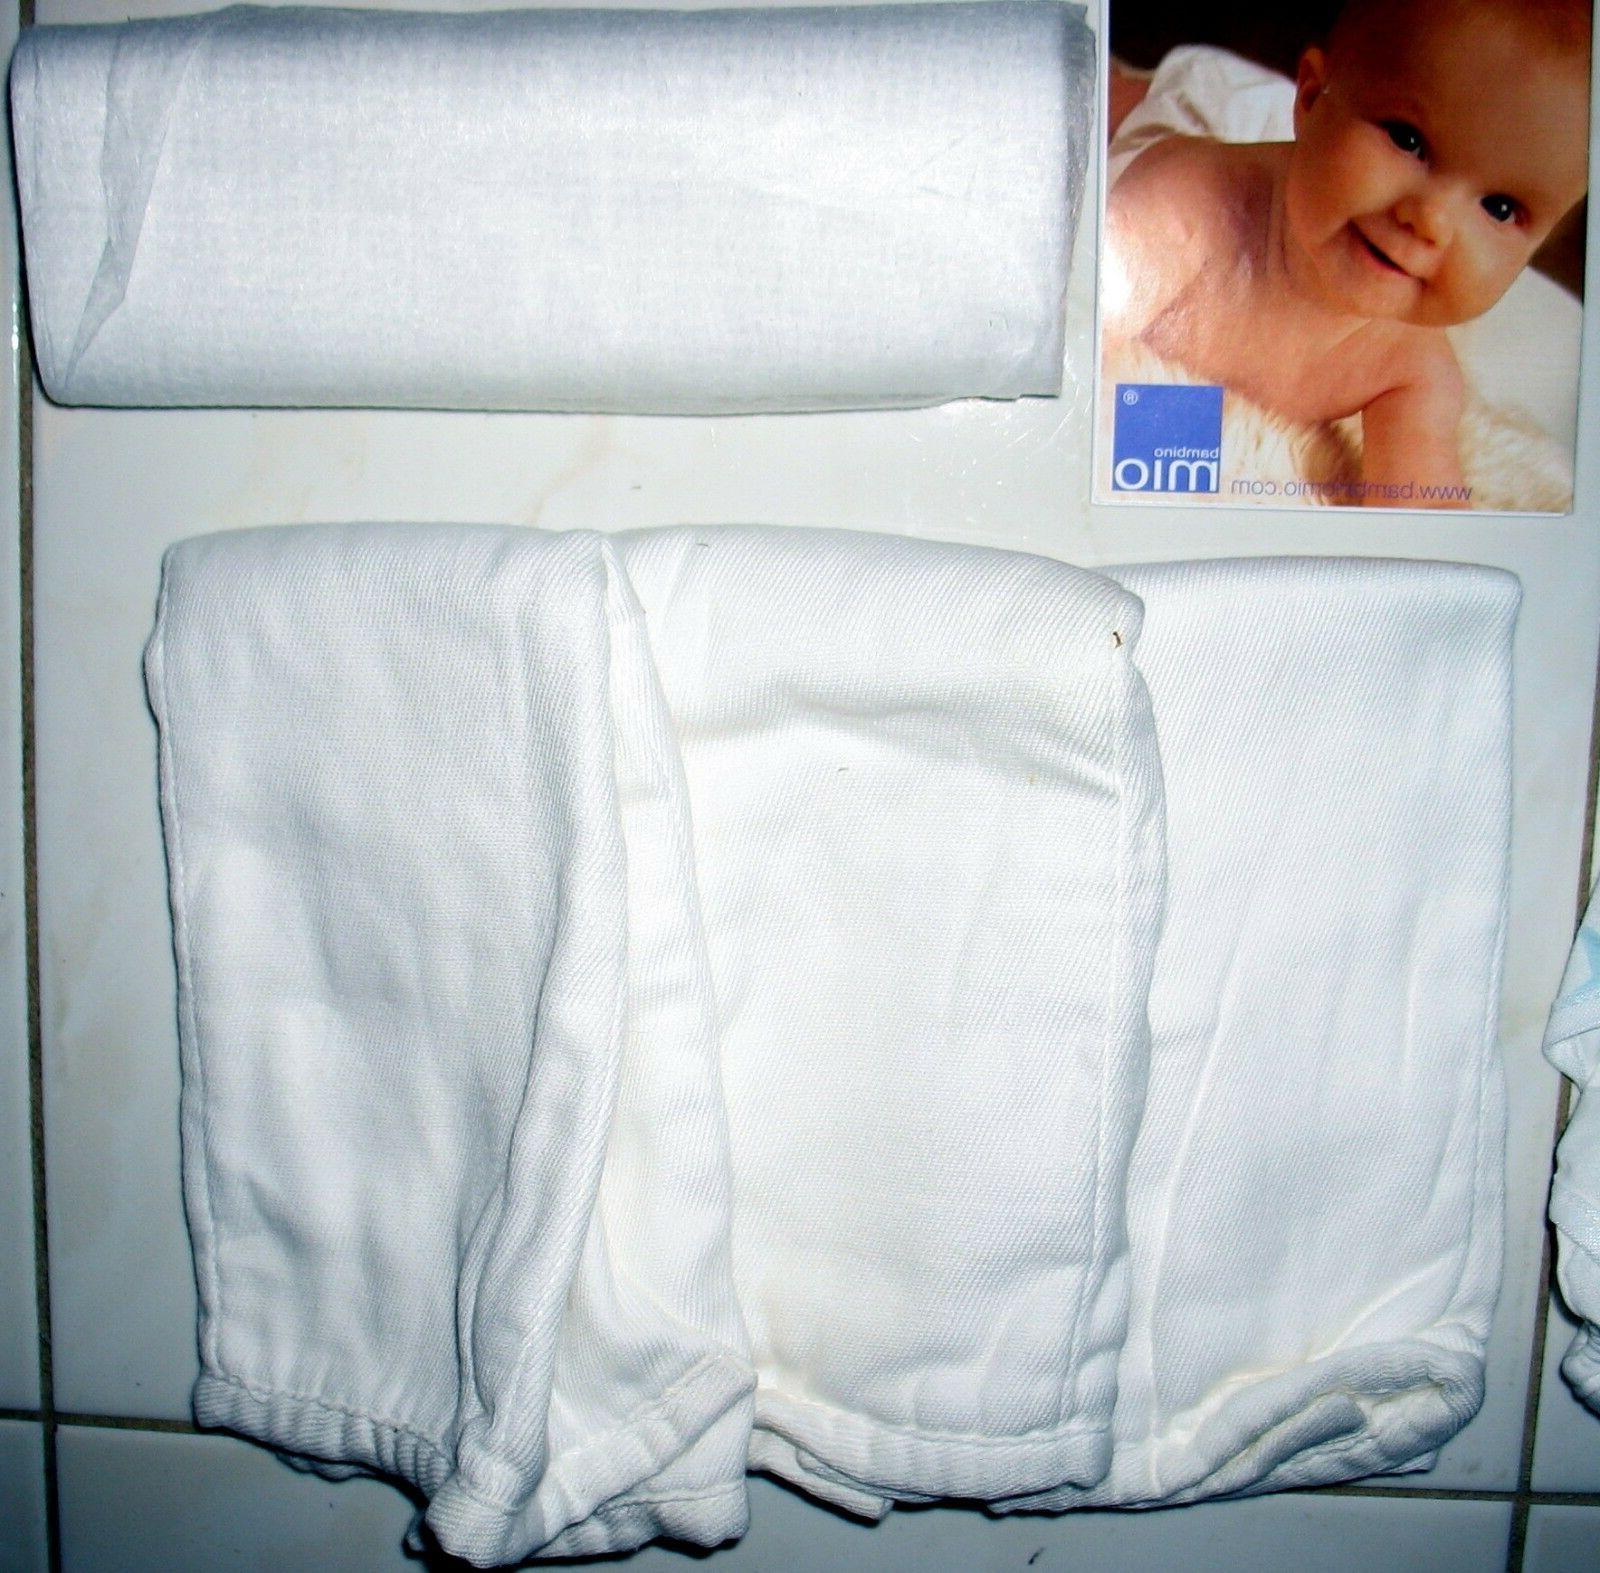 BAMBINO SMALL 11-16lbs INTRO KIT CONTAINS NAPPIES, NAPPY LINERS